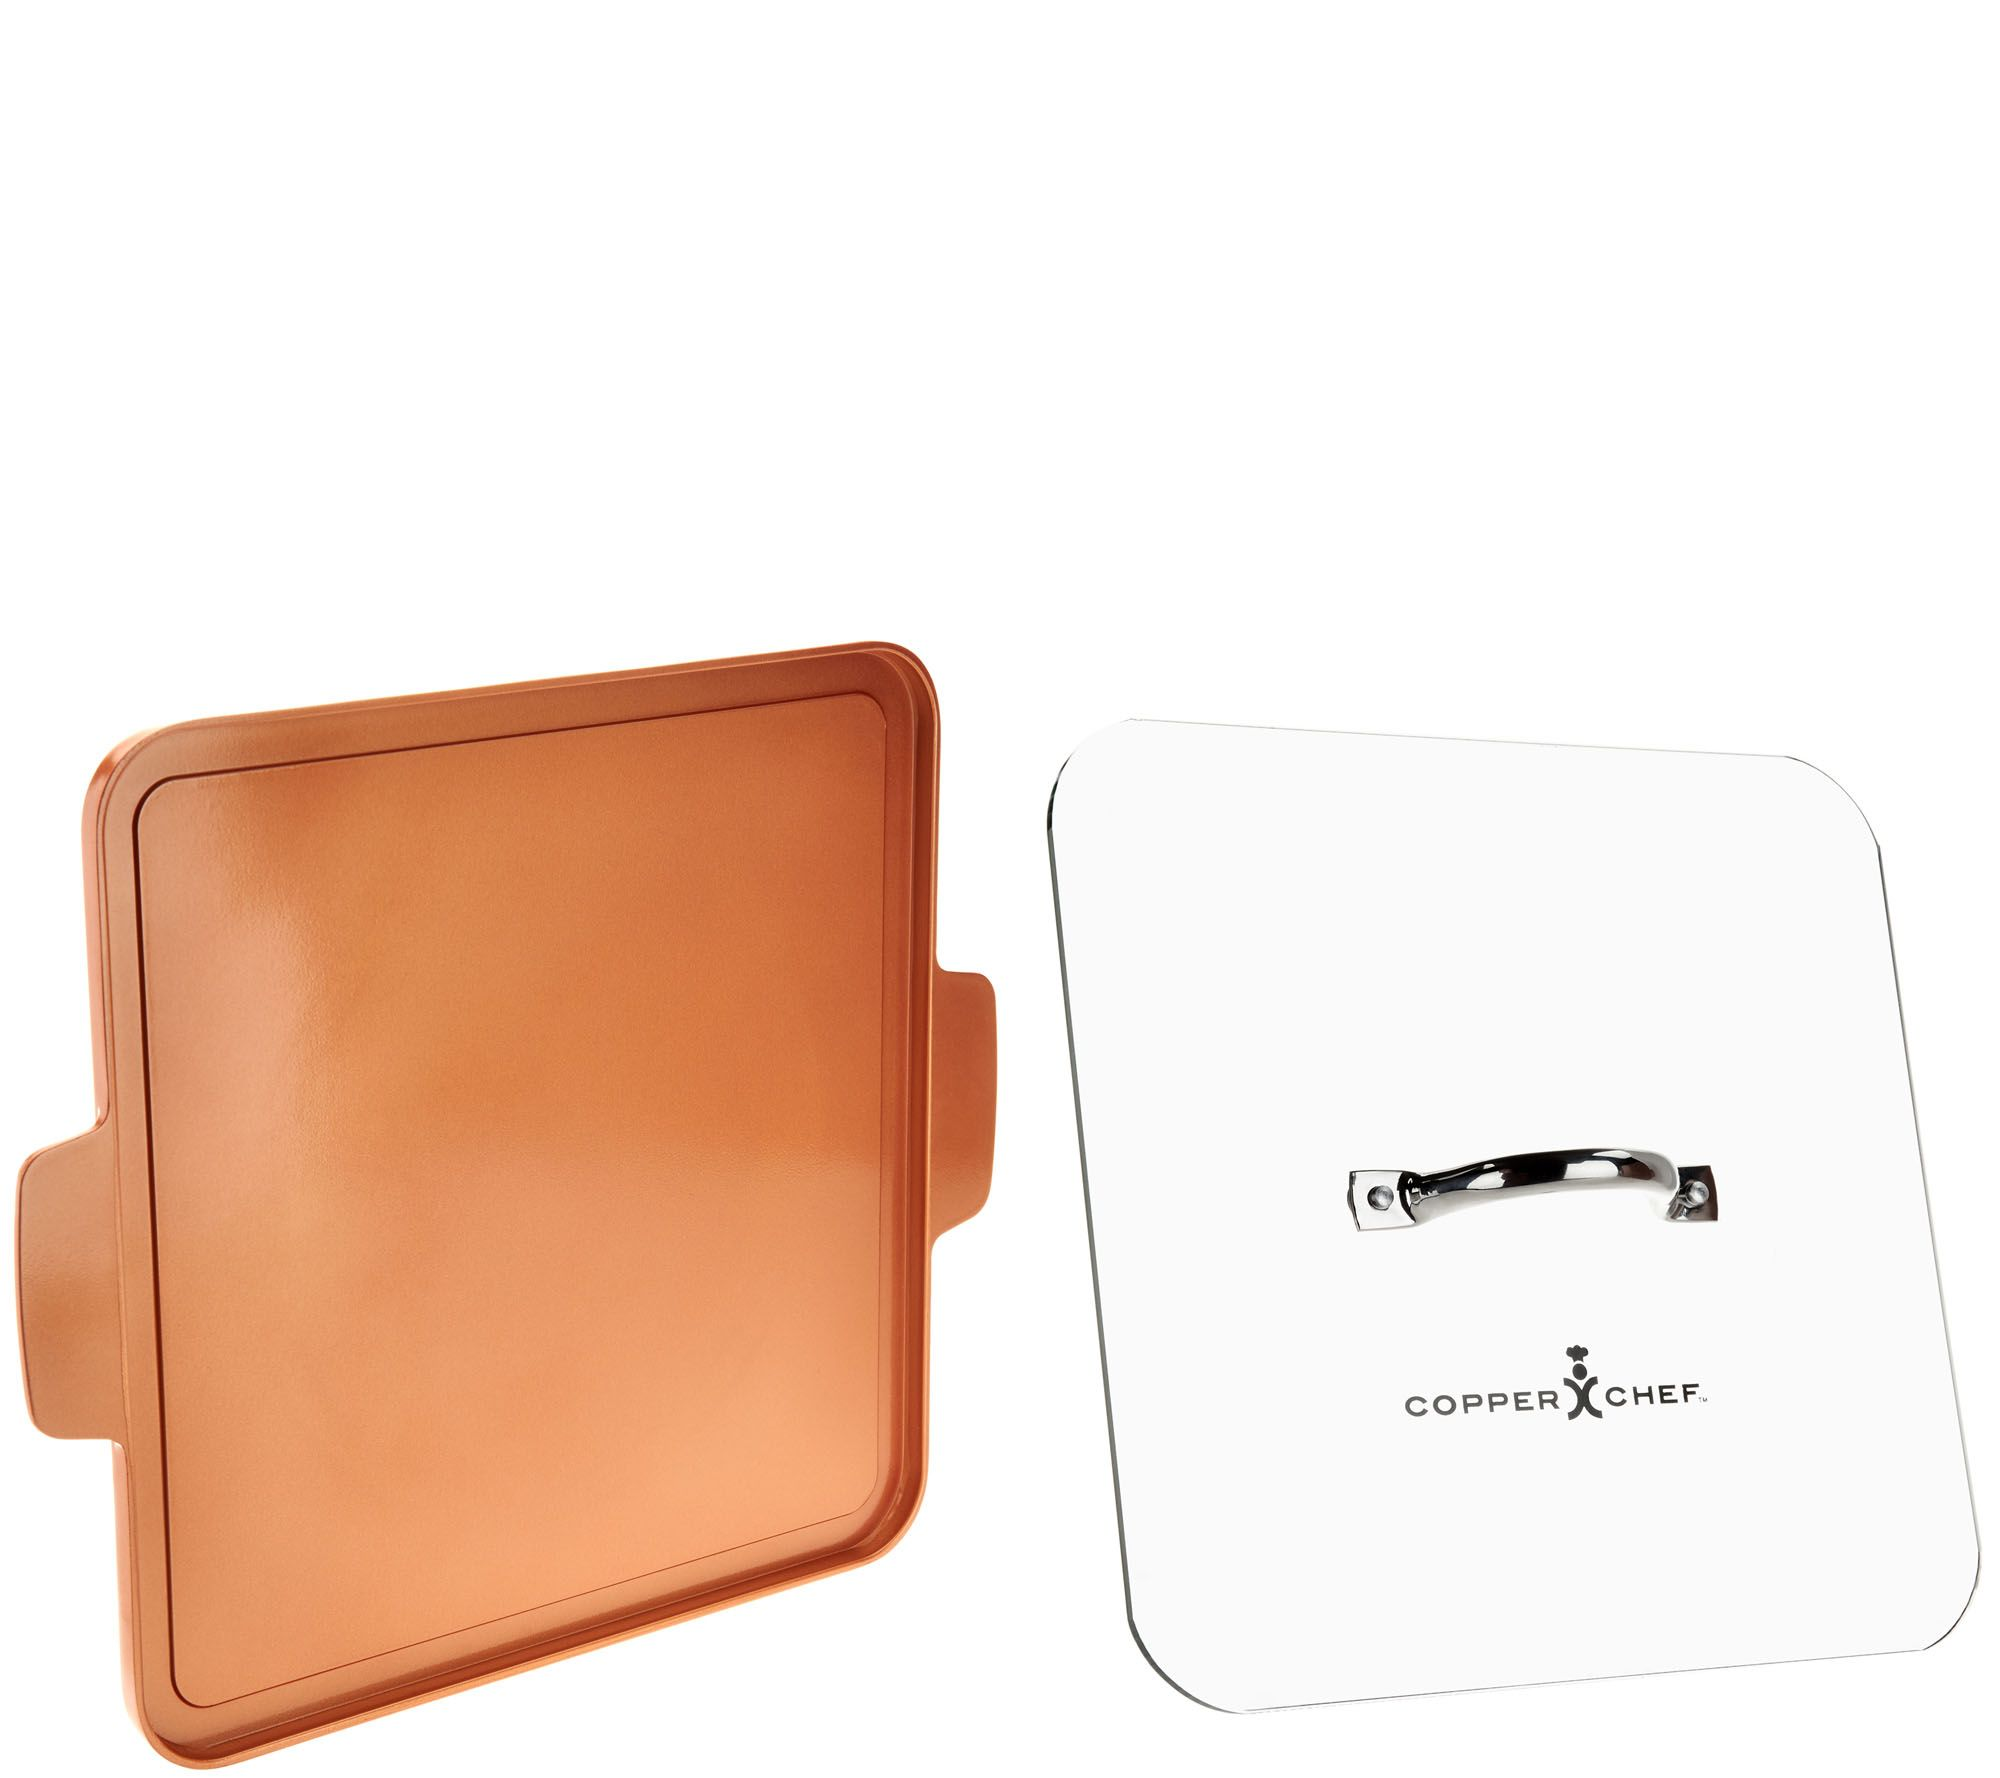 New customer qvc promo code - Copper Chef Indoor Outdoor 12 X12 Griddle With Glass Press K45819